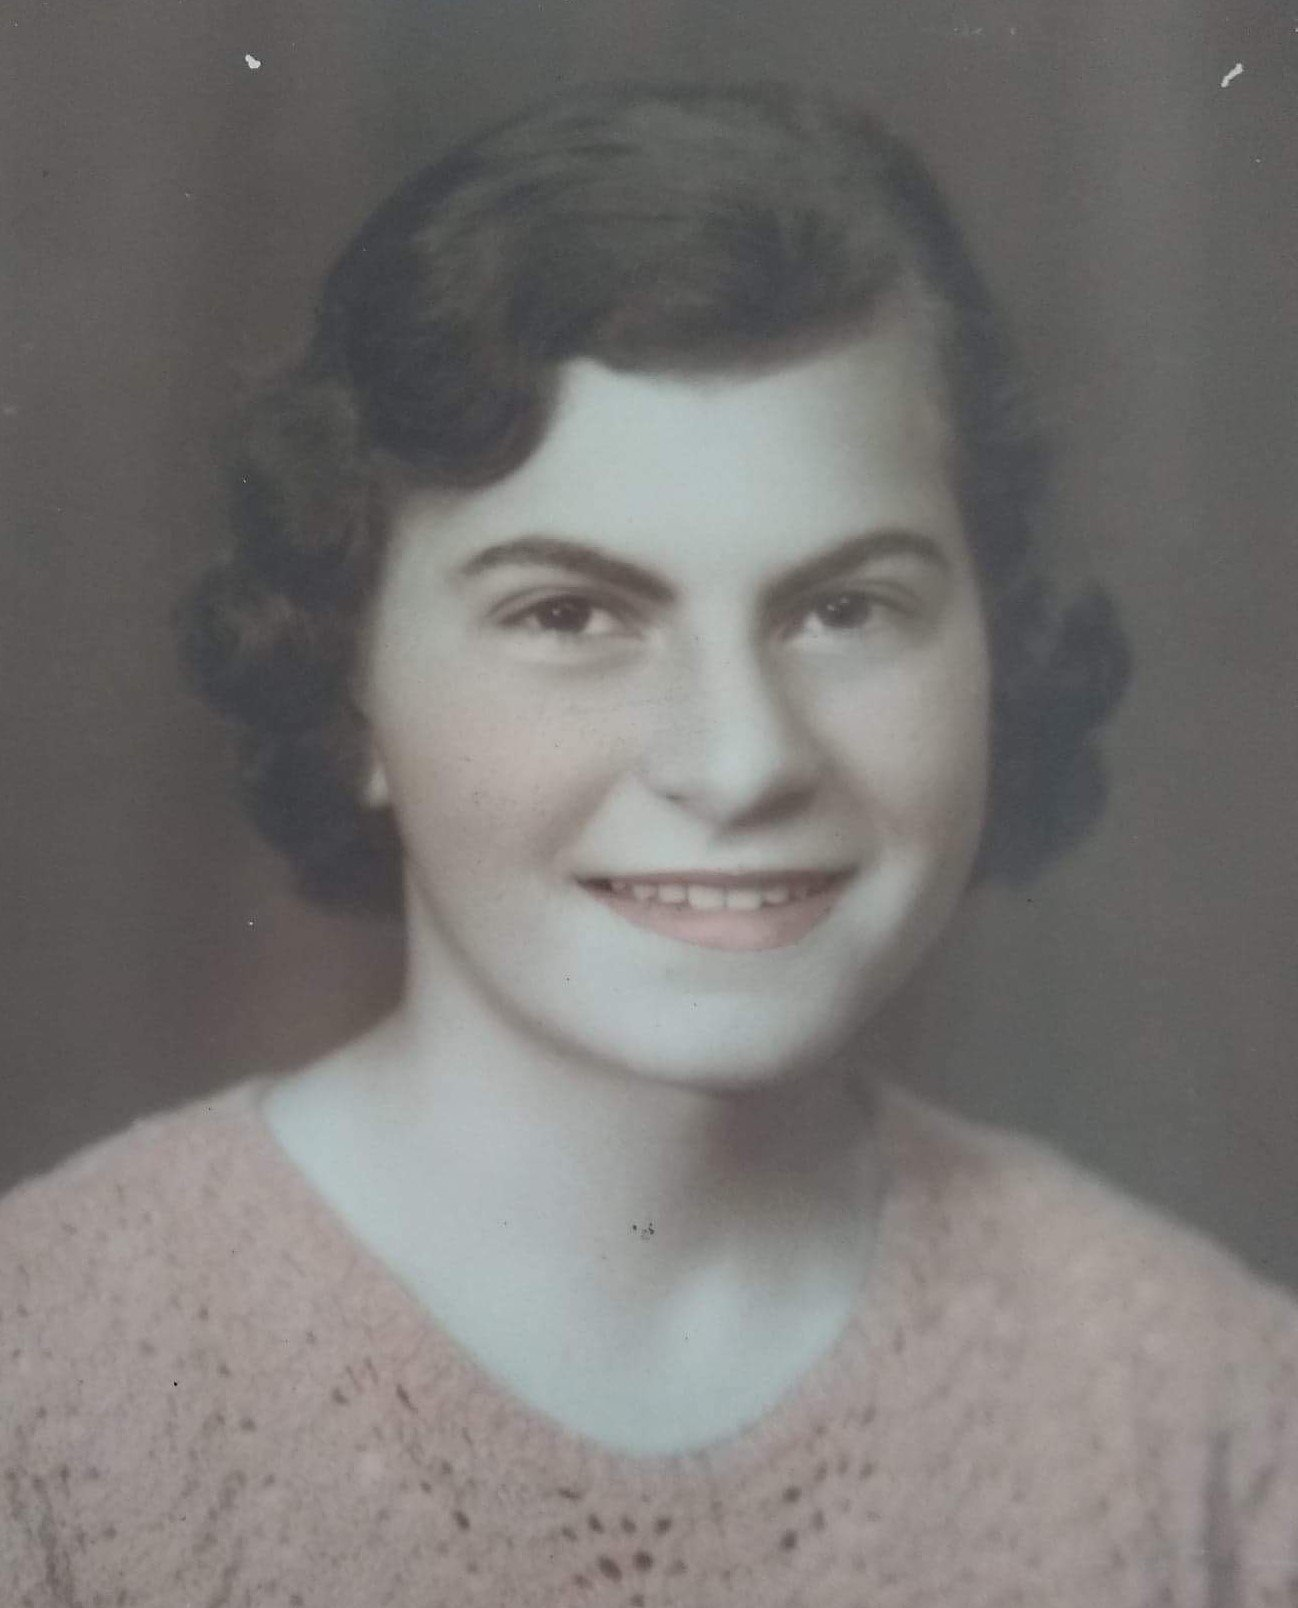 Bessie Conomos pictured as a 16-year-old in the late 1930s.